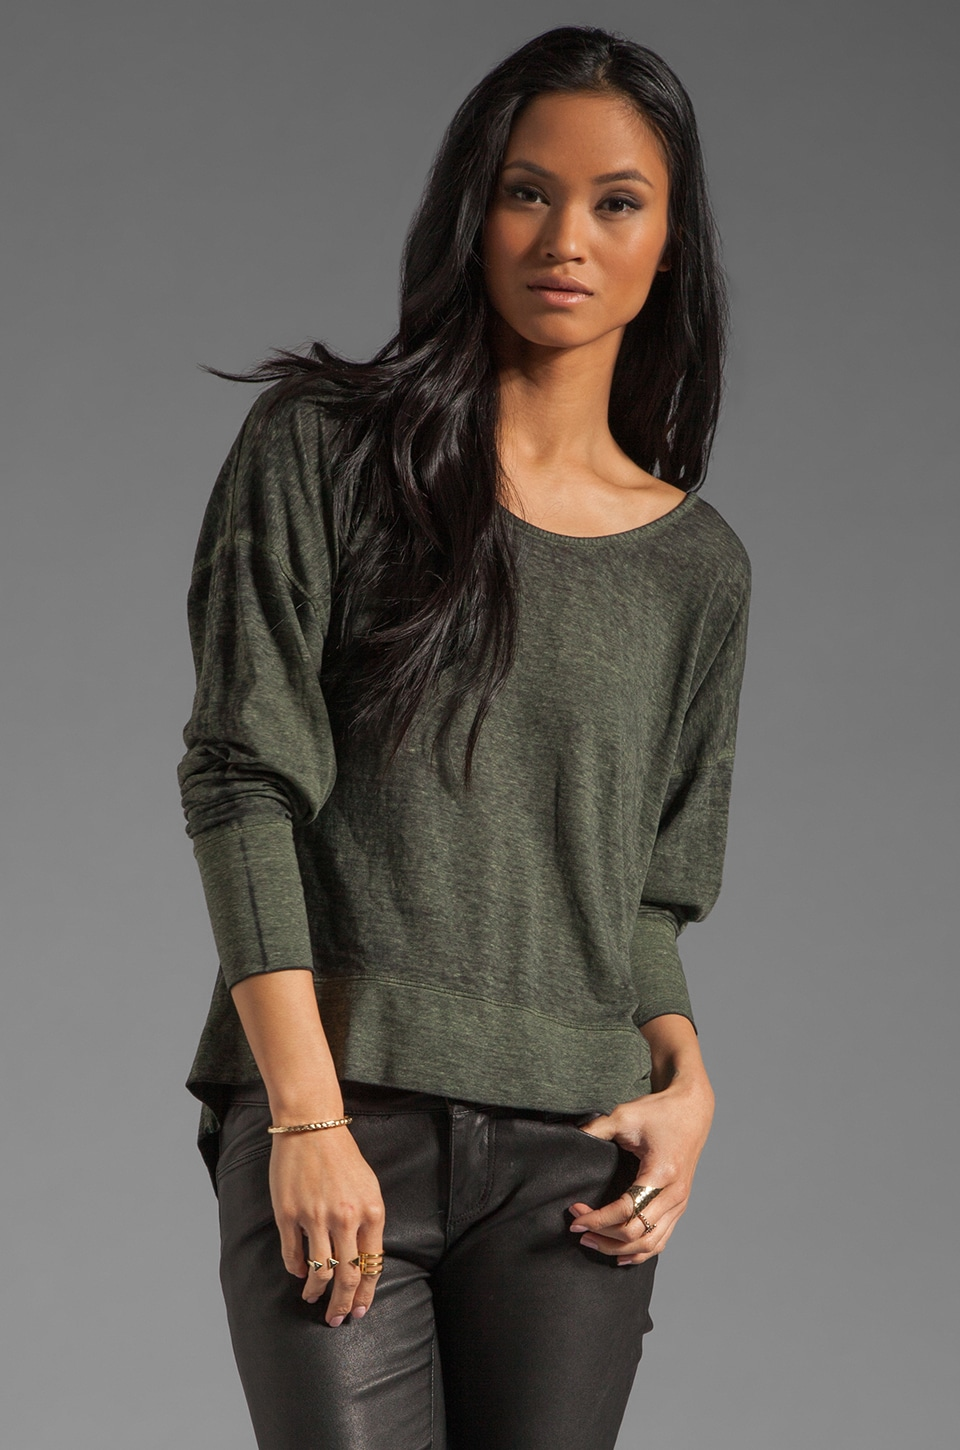 fLuXuS Parker Top in Army